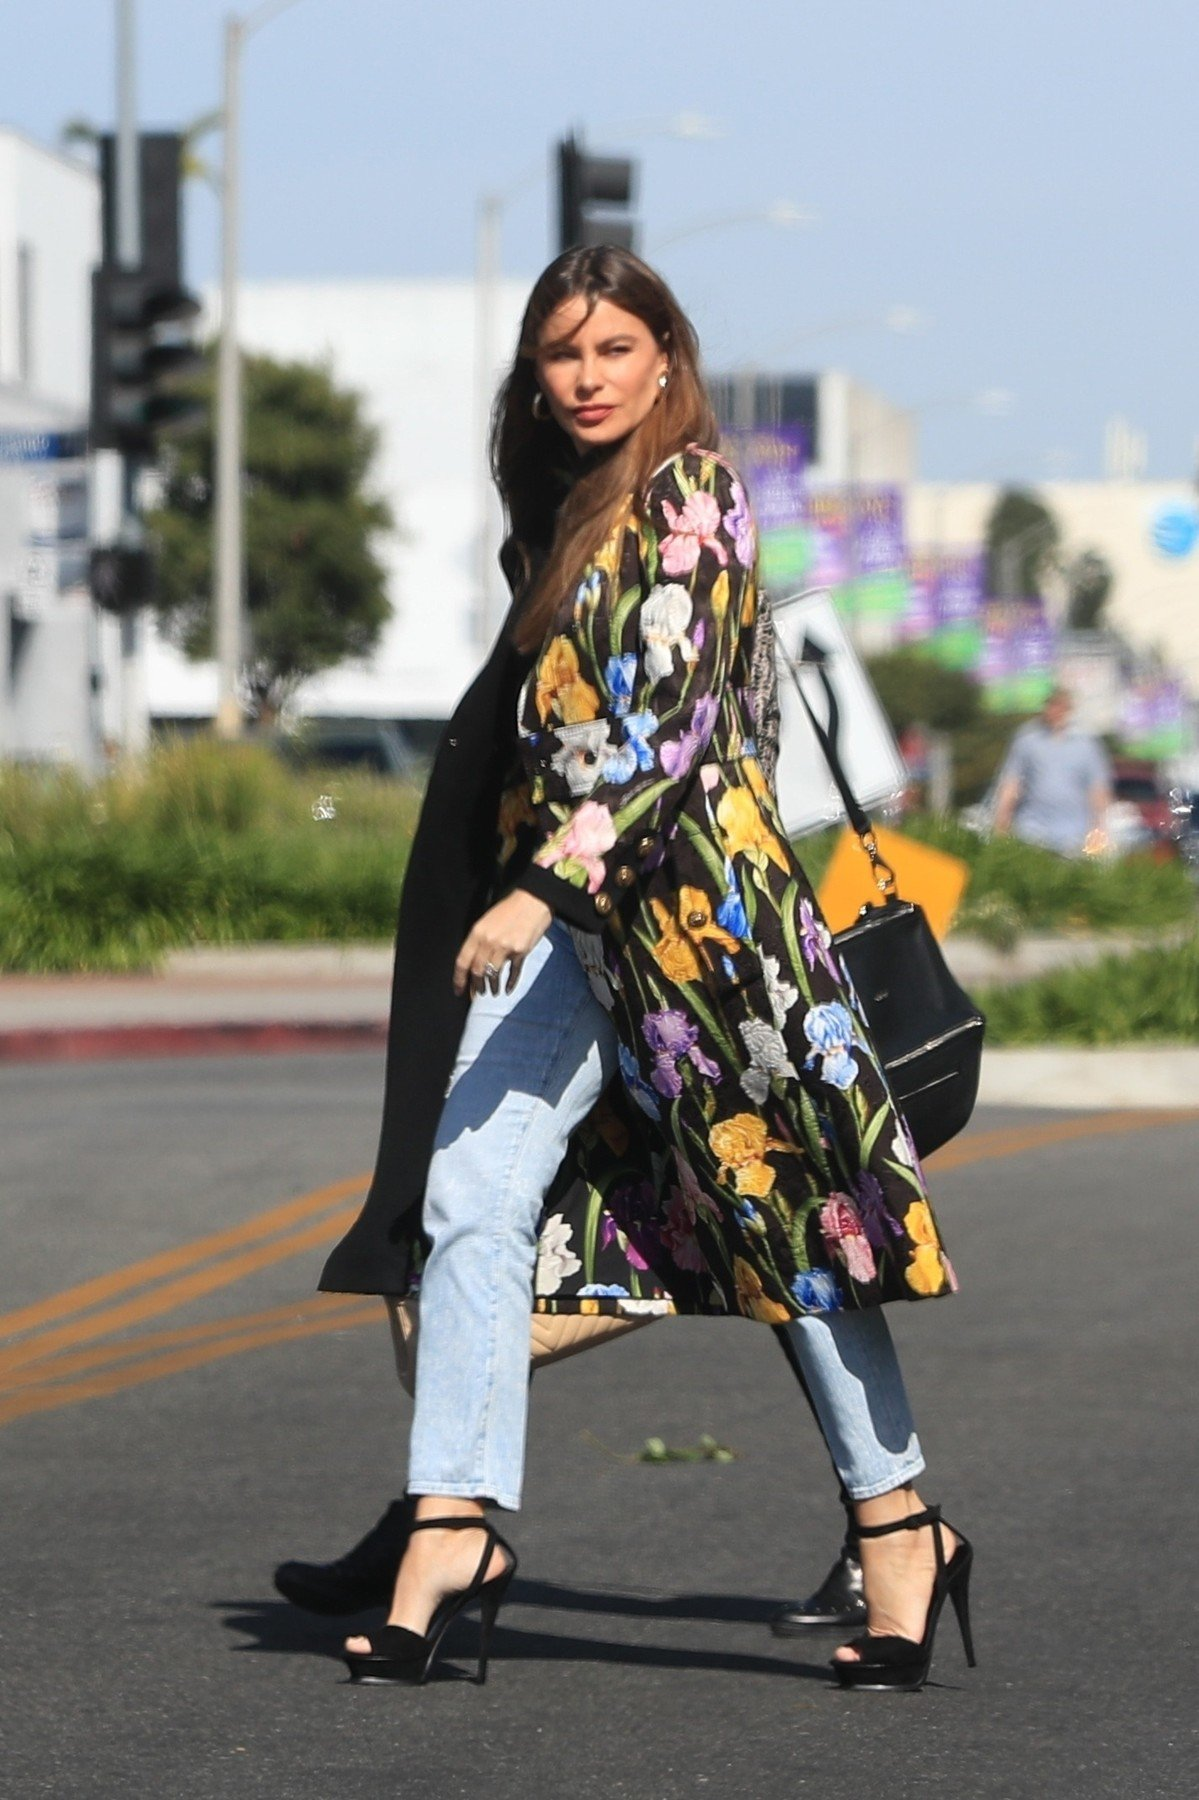 West Hollywood, CA  - Sofia Vergara looks colorful in a long floral print coat with jeans and black strappy heels for a shopping outing in West Hollywood with a girlfriend.  Pictured: Sofia Vergara  BACKGRID USA 15 APRIL 2019, Image: 426296507, License: Rights-managed, Restrictions: , Model Release: no, Credit line: Profimedia, Backgrid USA